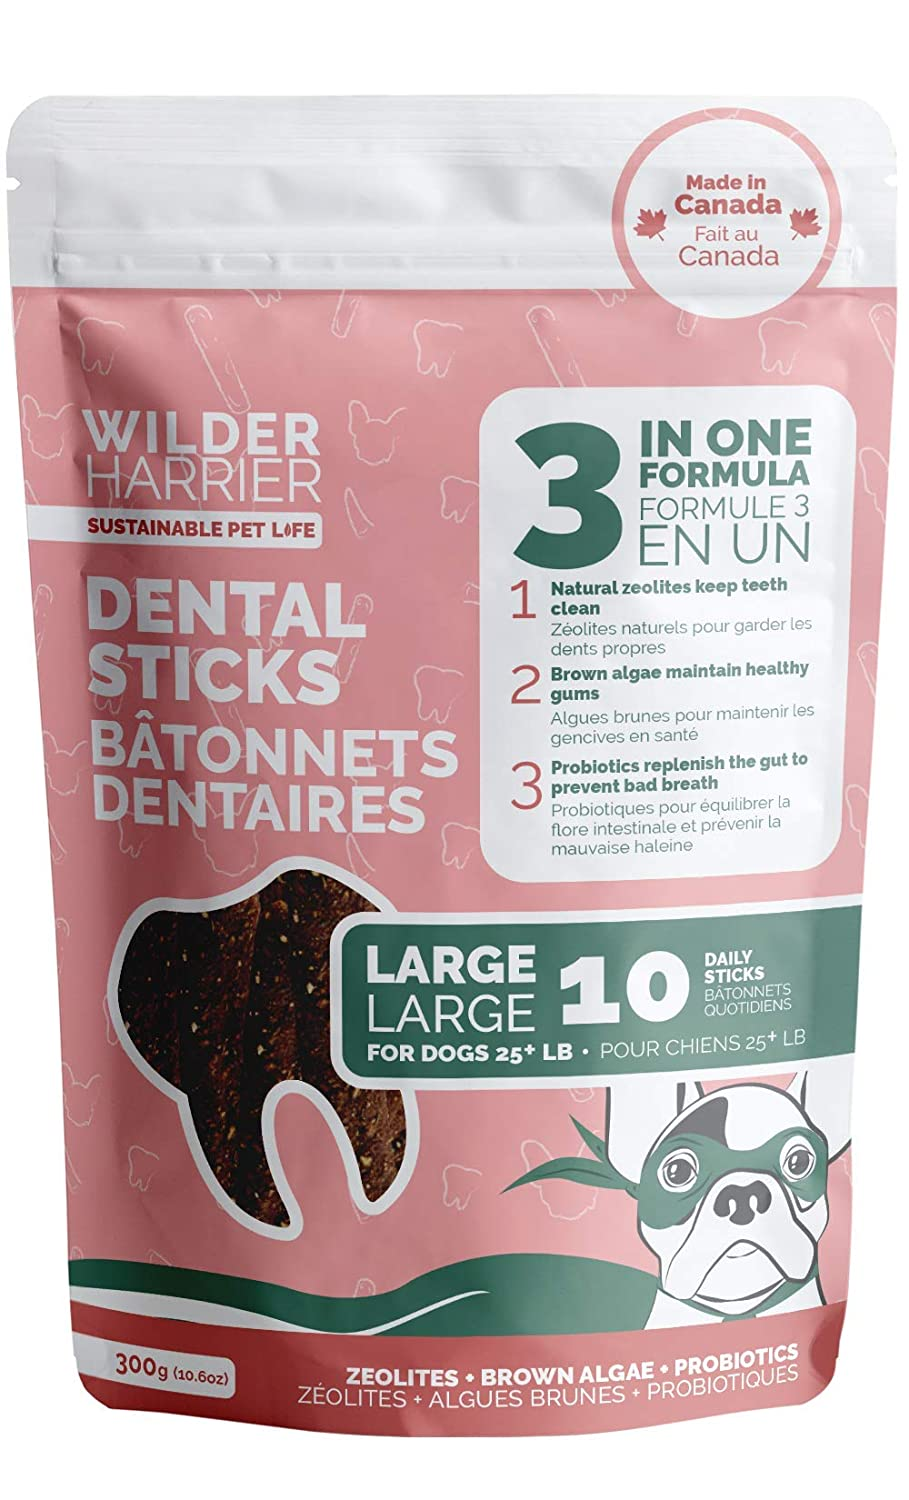 Wilder Harrier Dog Dental Treats 3 in 1 Formula with Zeolites, Probiotics and Brown Algae (Small) | Natural zeolites keep teeth clean | Brown algae maintain healthy gums | Probiotics replenish the gut to prevent bad breath